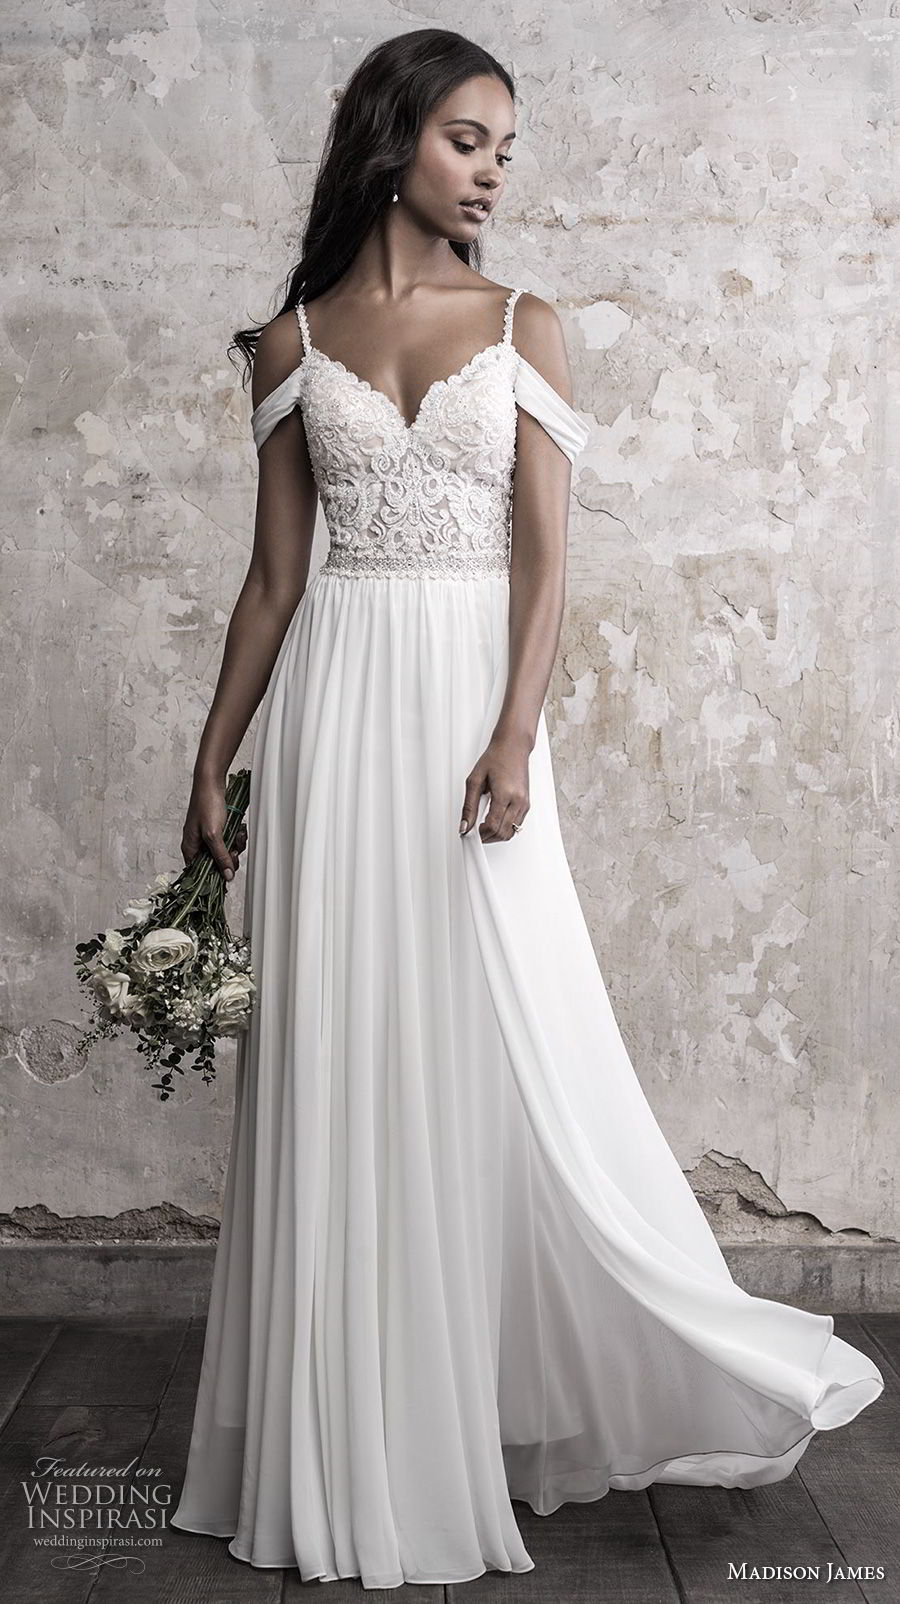 madison james fall 2018 bridal cold shoulder spaghetti strap sweetheart neckline heavily embellished bodice romantic soft a line wedding dress open back chapel train (8) mv